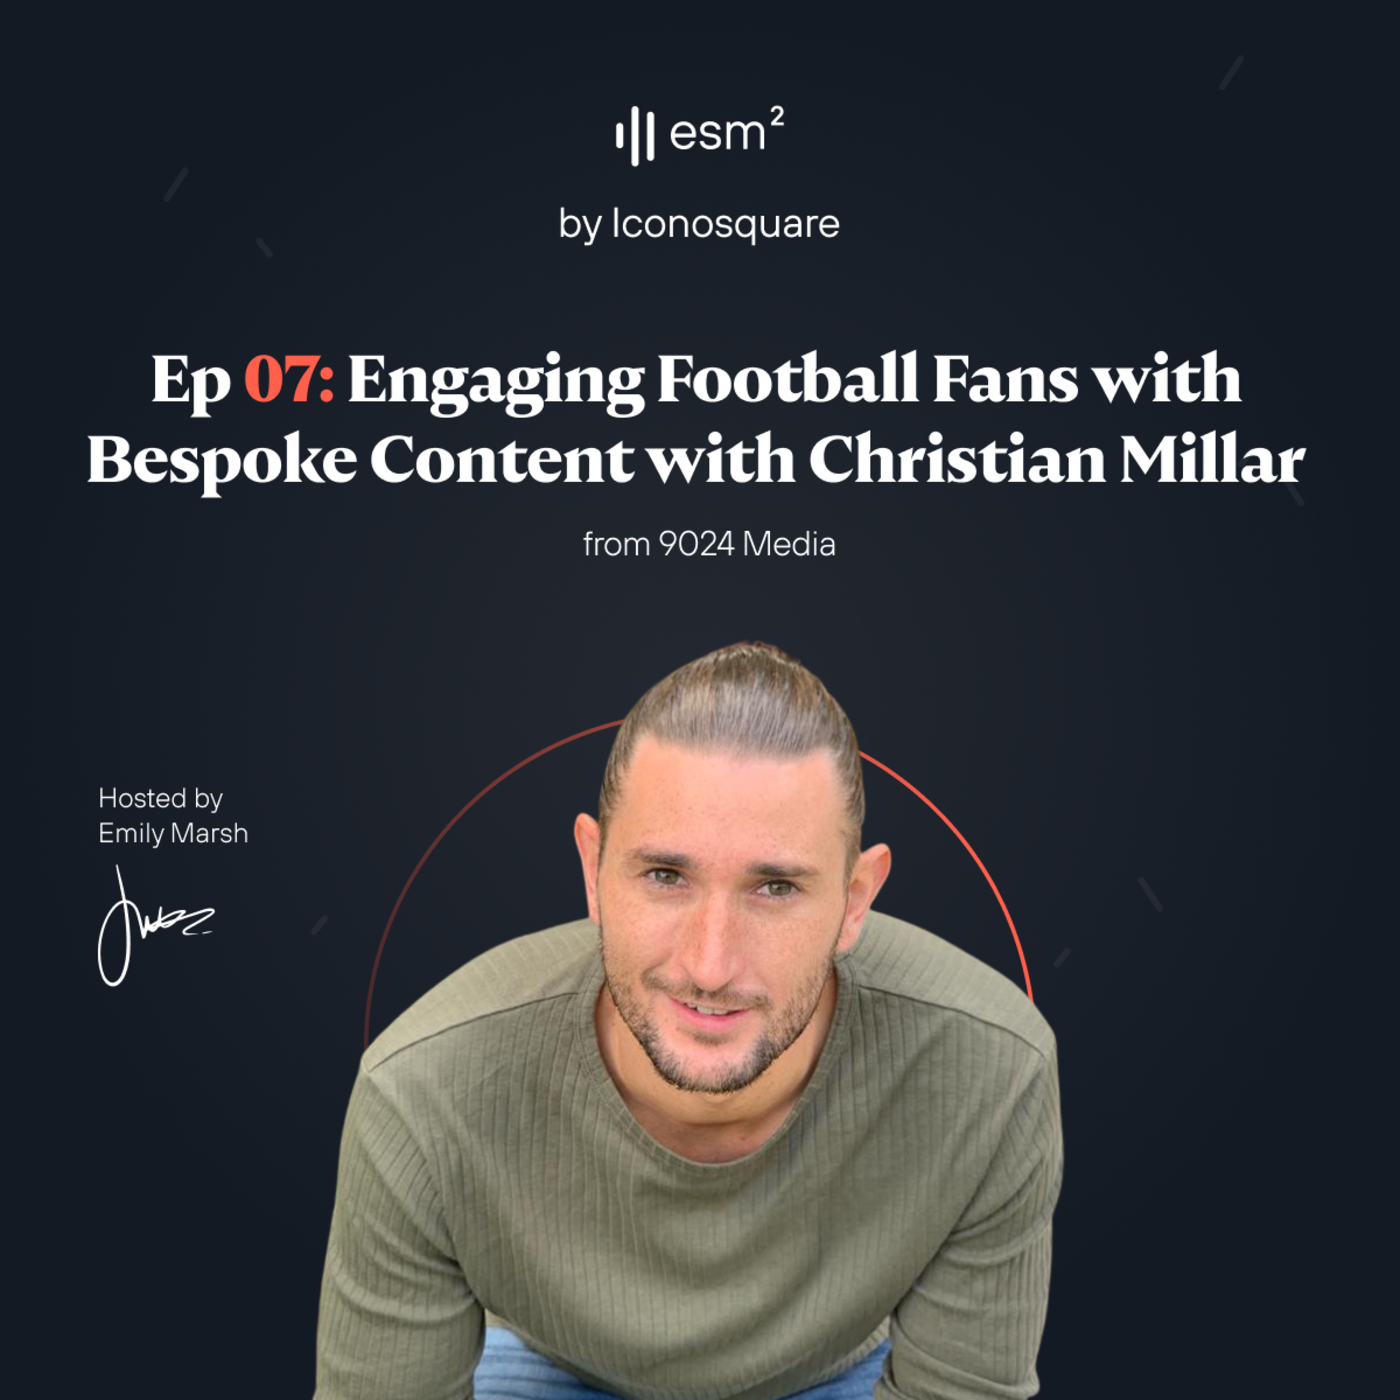 """""""Engaging Football Fans with Bespoke Content"""" - Christian Millar from 9024 Media"""